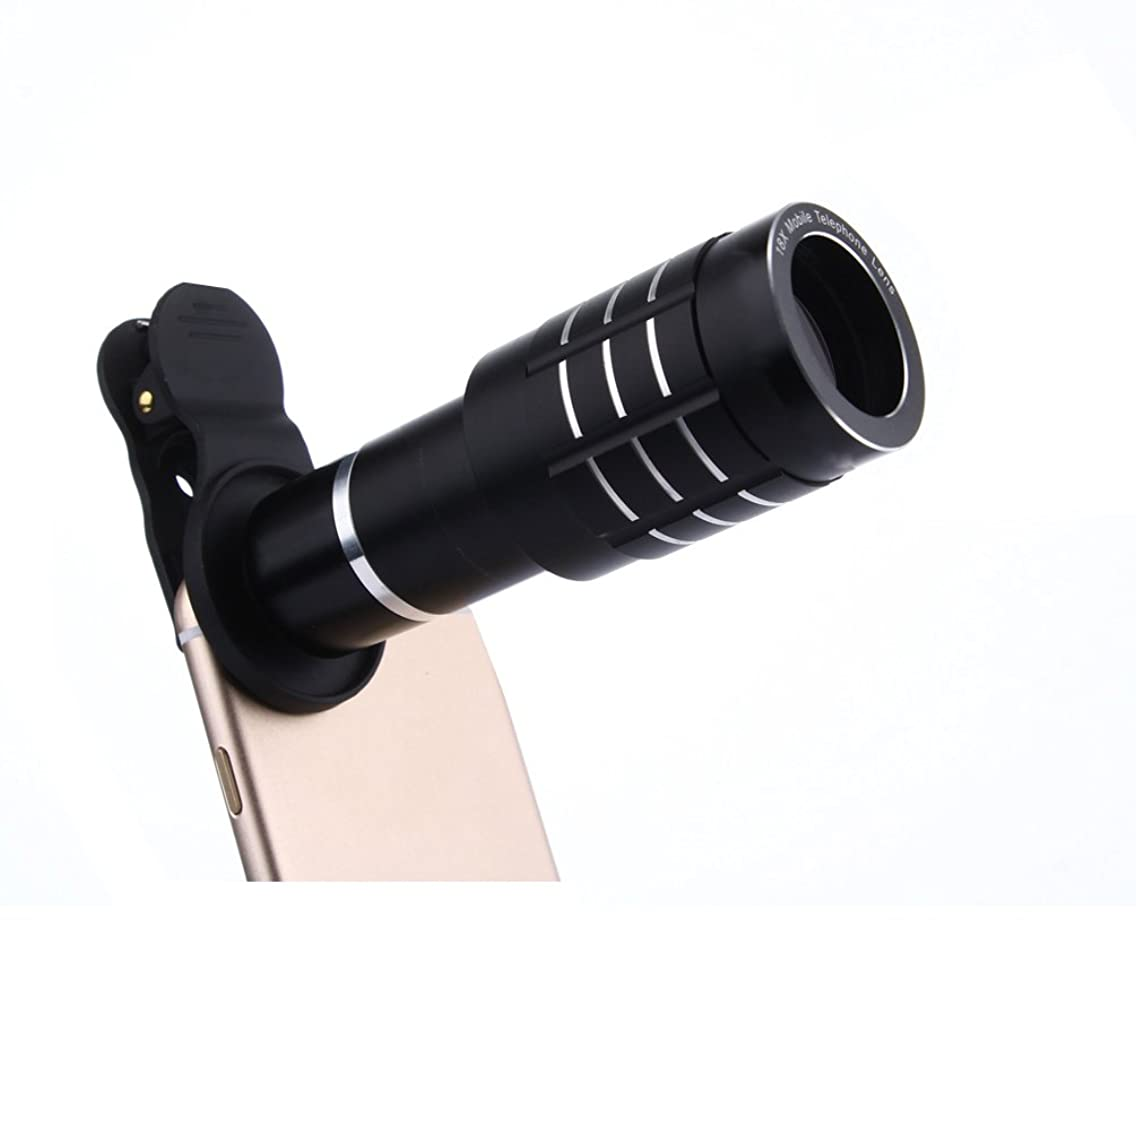 Jaylinna Universal HD 12x Phone Monocular Phone Camera Lens Phone Telescope Zoom Lens with Tripod for Iphone,Samsung,Huawei,Sony and More(Black)